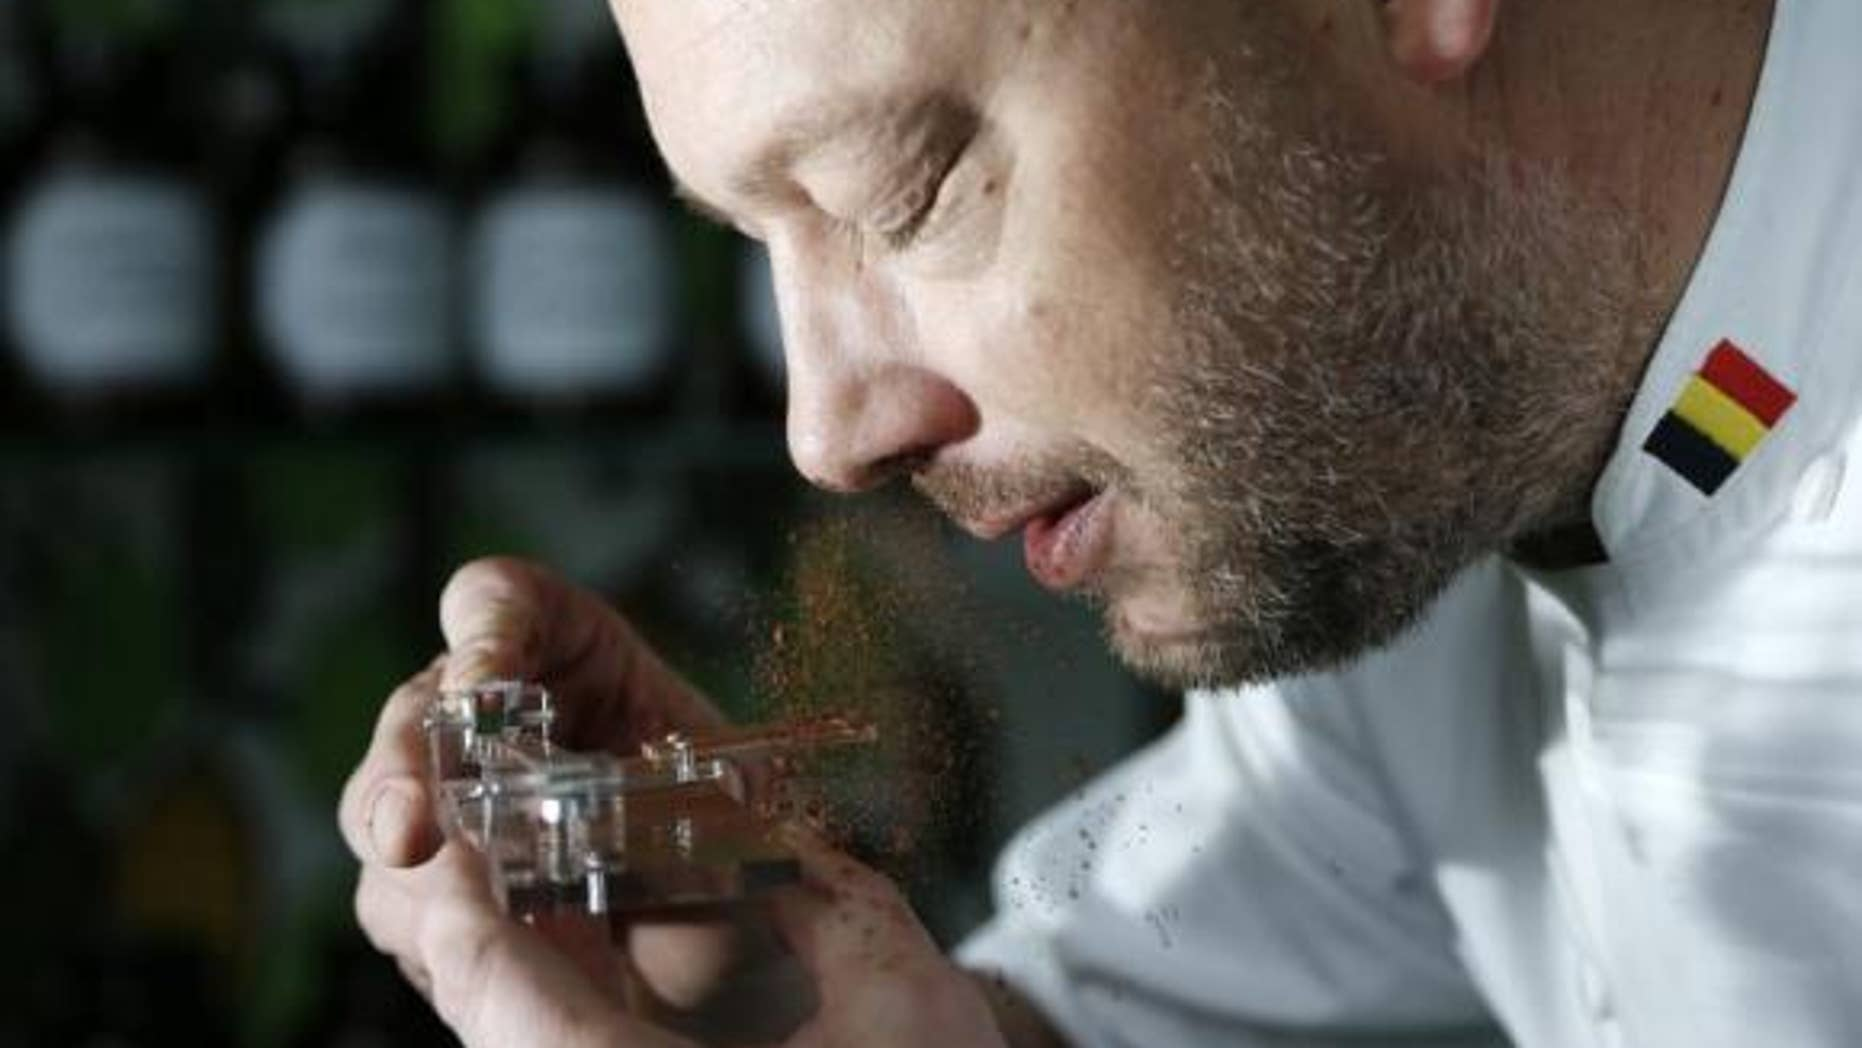 Belgian chocolatier Dominique Persoone snorts cocoa powder off his Chocolate Shooter device. Reuters